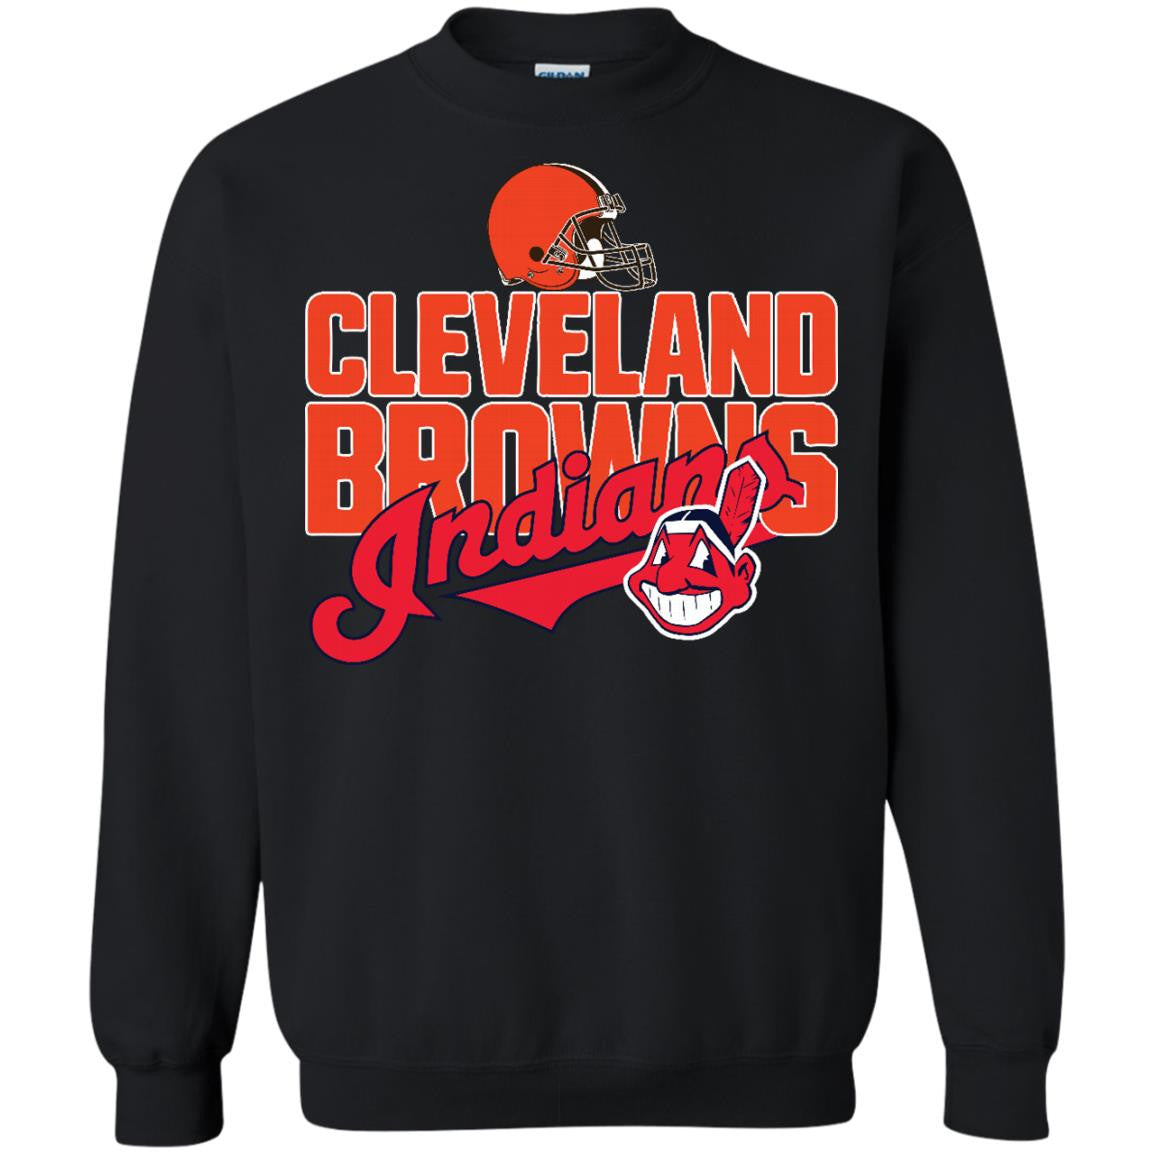 Browns hoodies